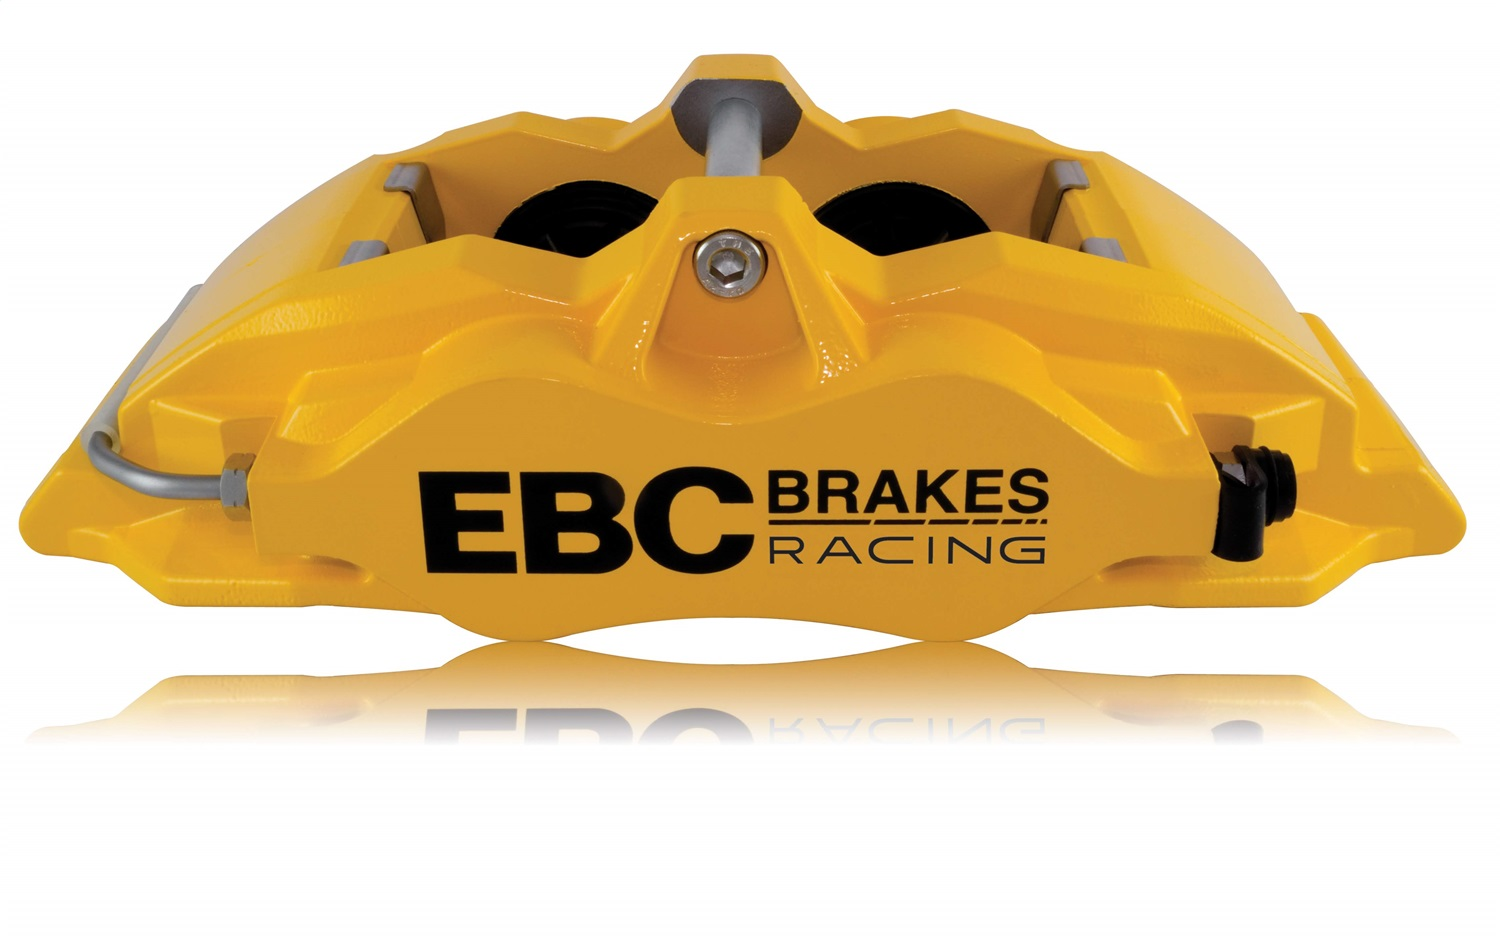 EBC Brakes BC4101YEL-L Apollo-4 Brake Calipers Fits 14-17 Fiesta